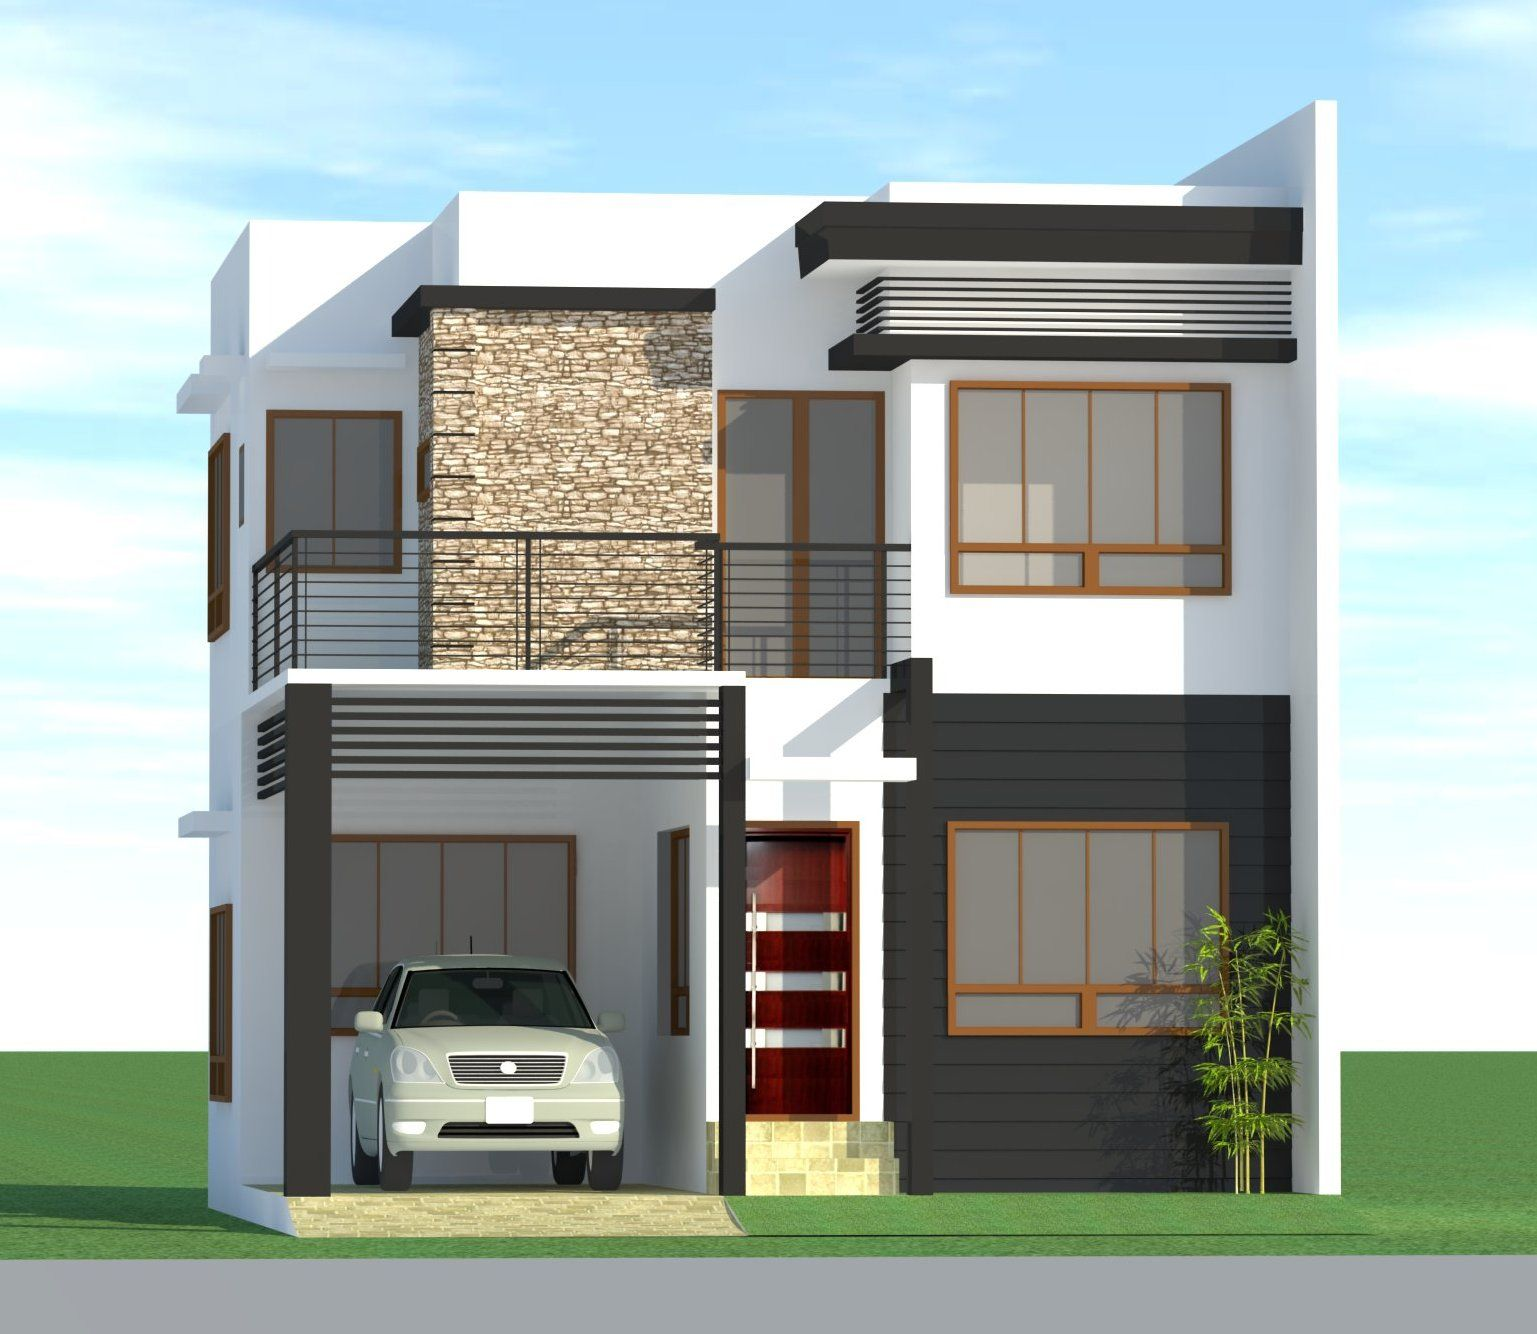 Philippines house design images 3 home design ideas for Home front design model